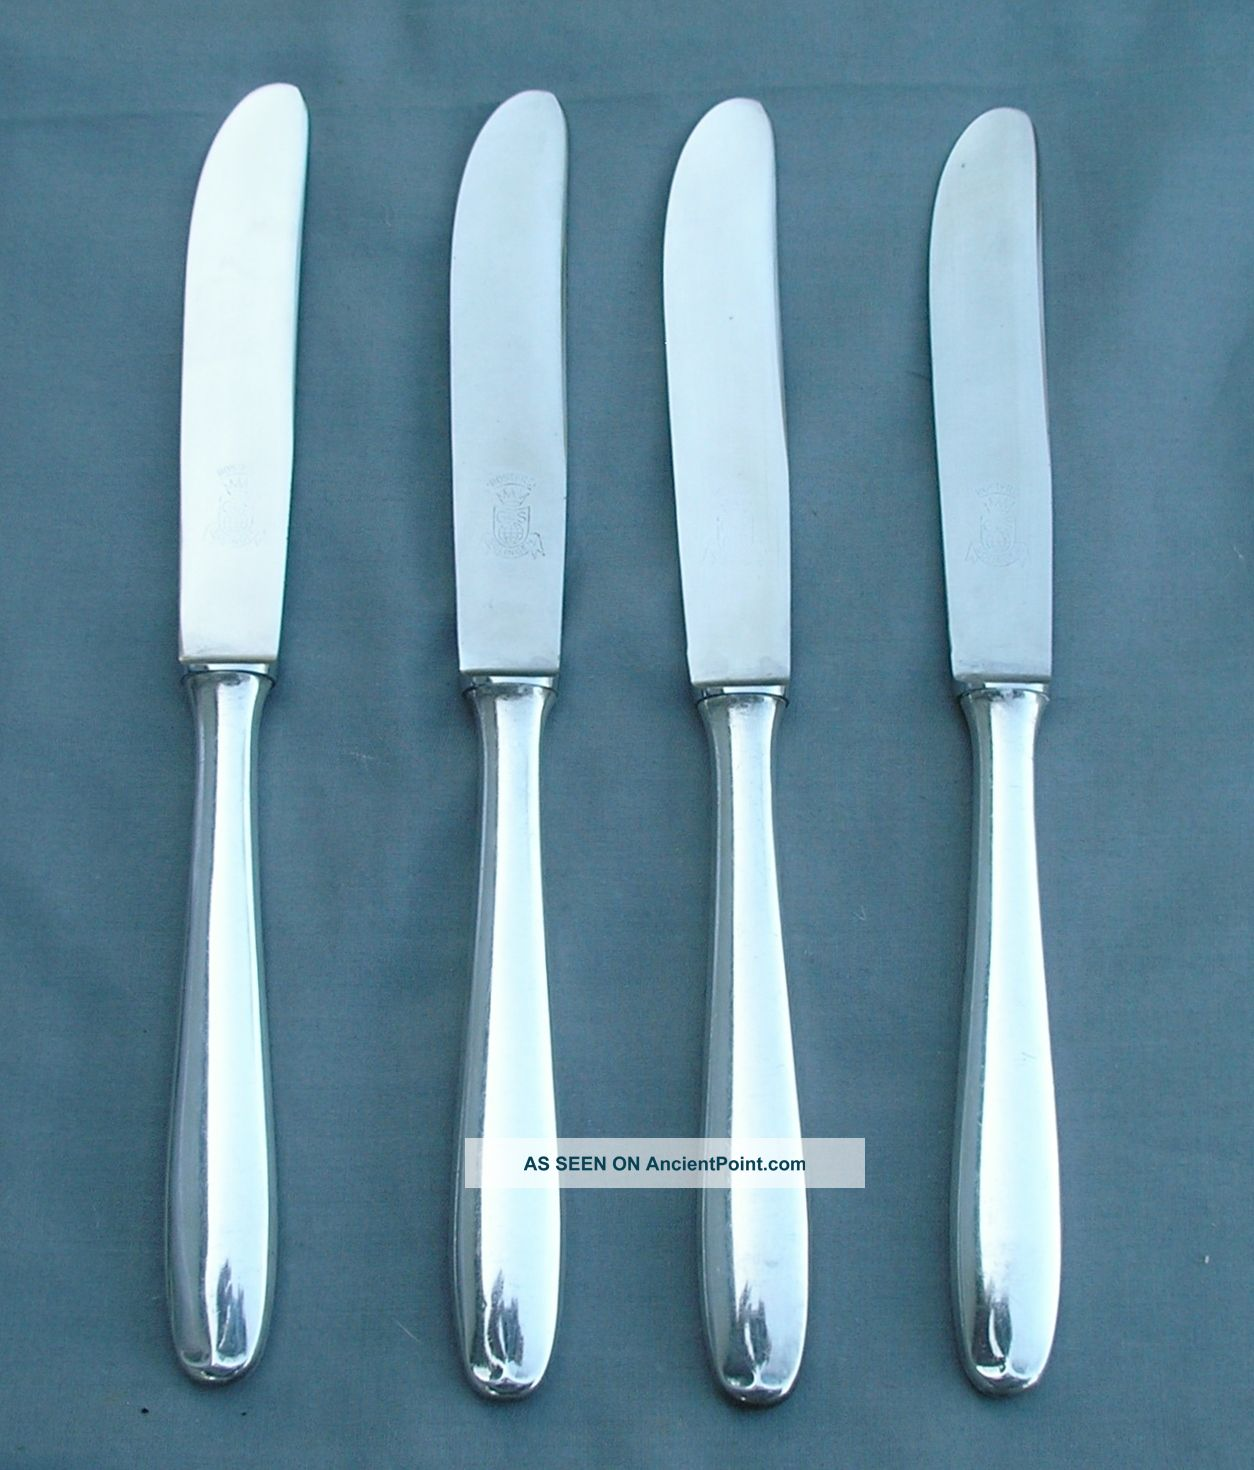 4 Rostfrei Ges Solingen Germany 800 Silver Dinner Knives Exc Cond No Mono Germany photo